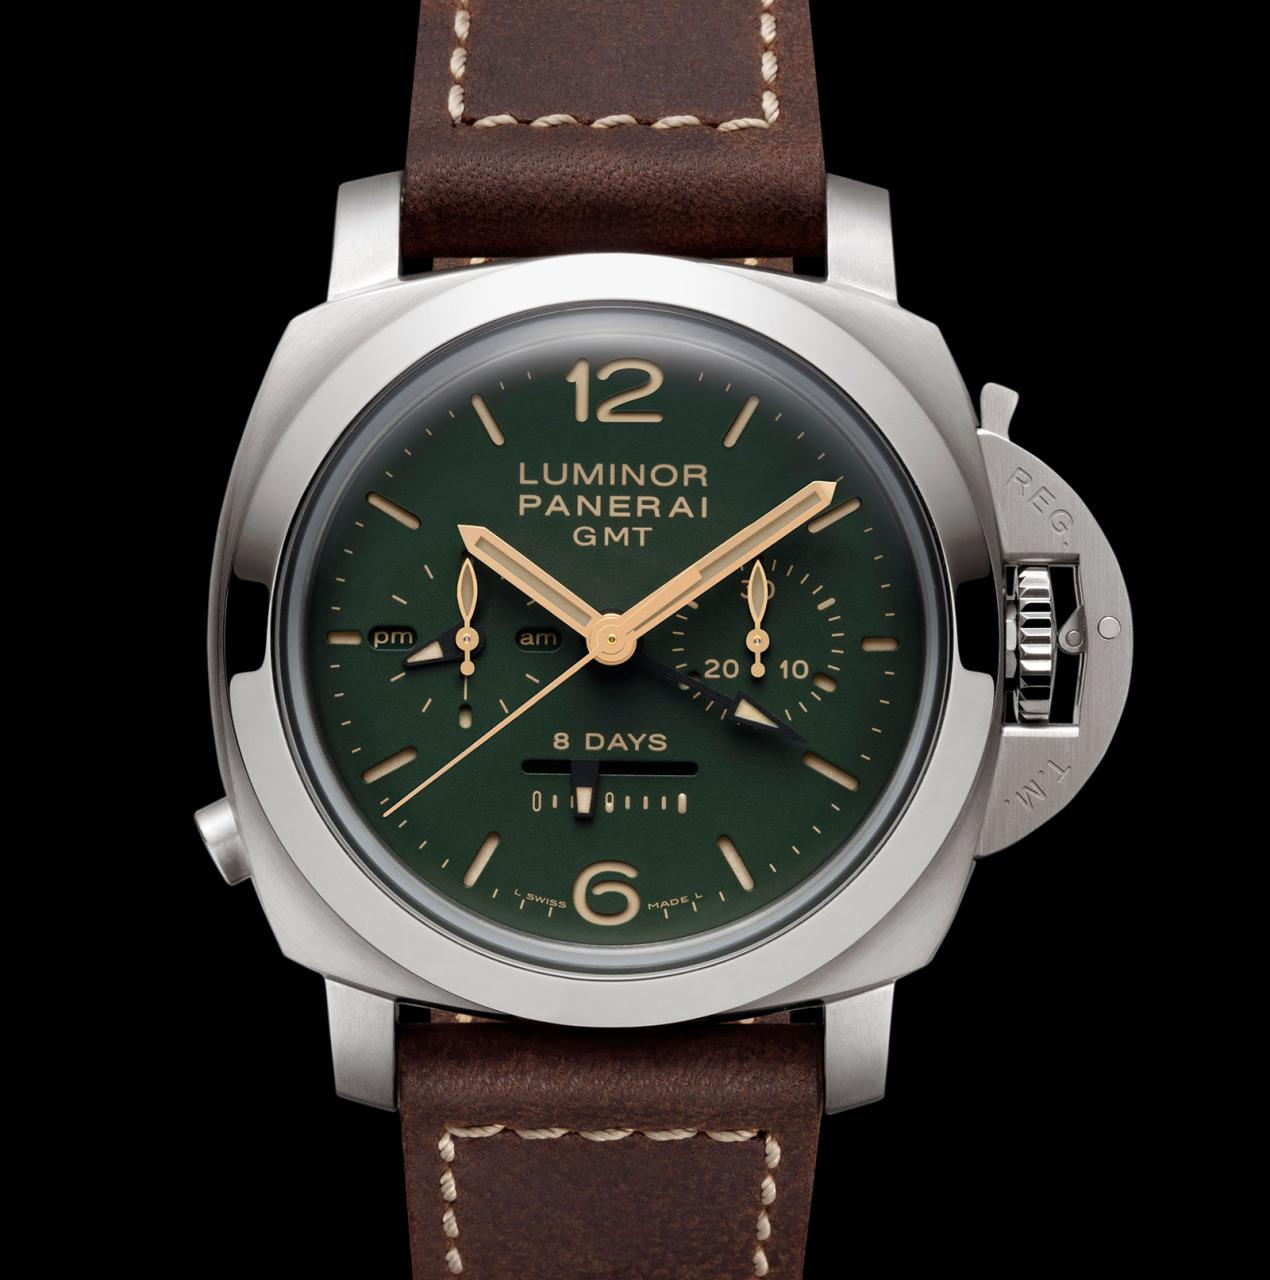 Panerai Luminor 1950 Chrono green dial PAM 737-3